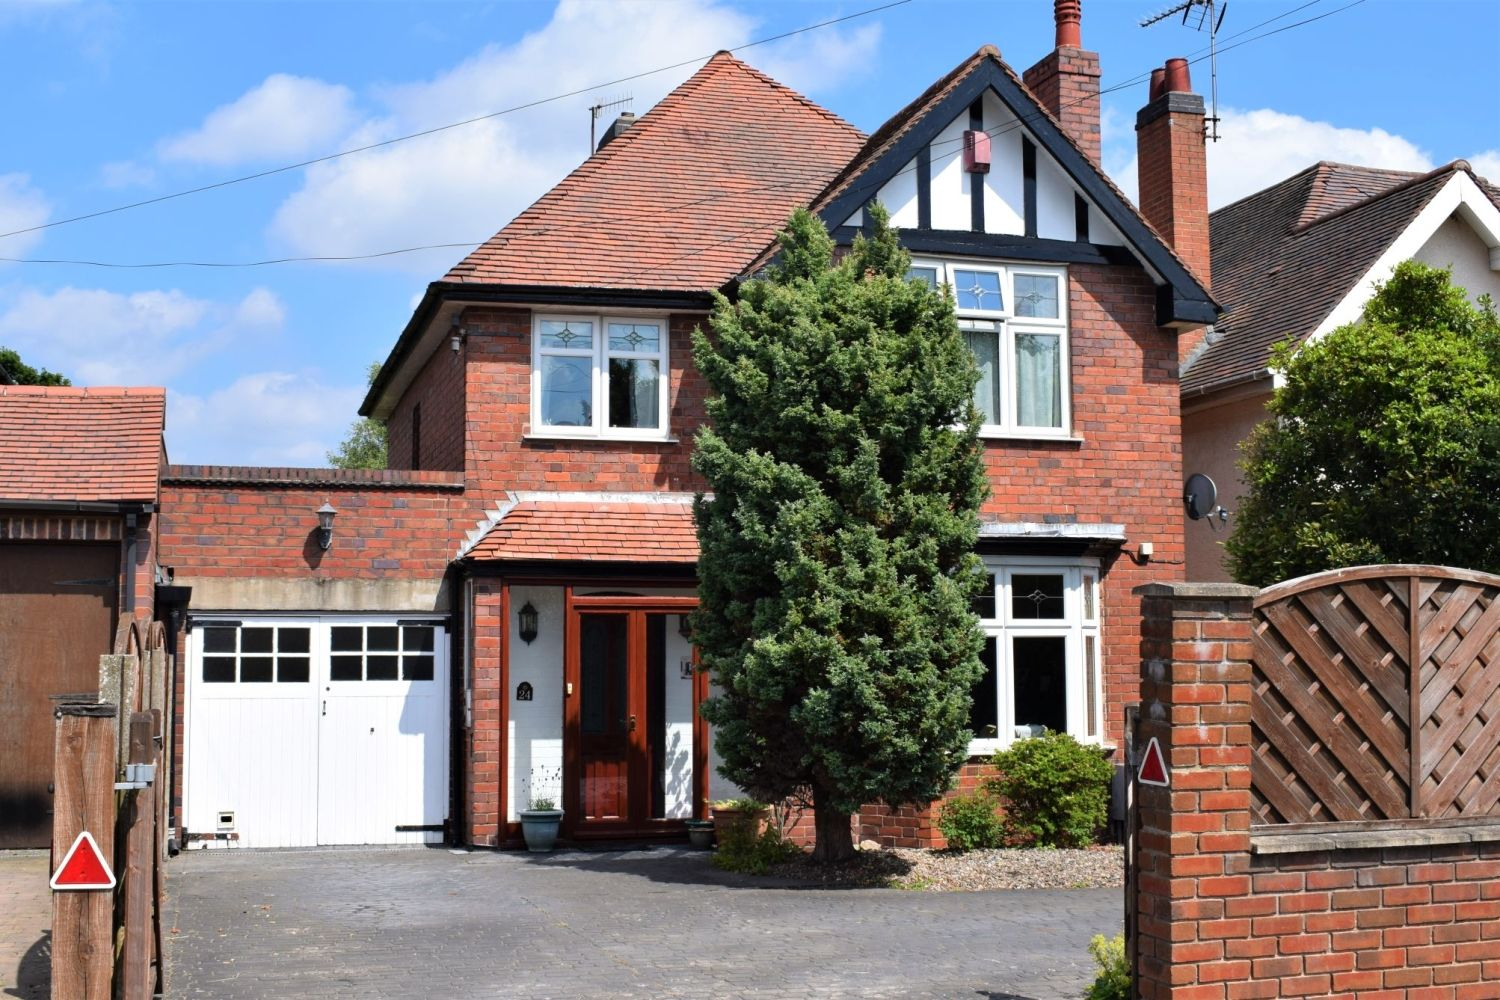 3 bed detached for sale in Stourbridge Road, Fairfield, Bromsgrove, B61  - Property Image 1